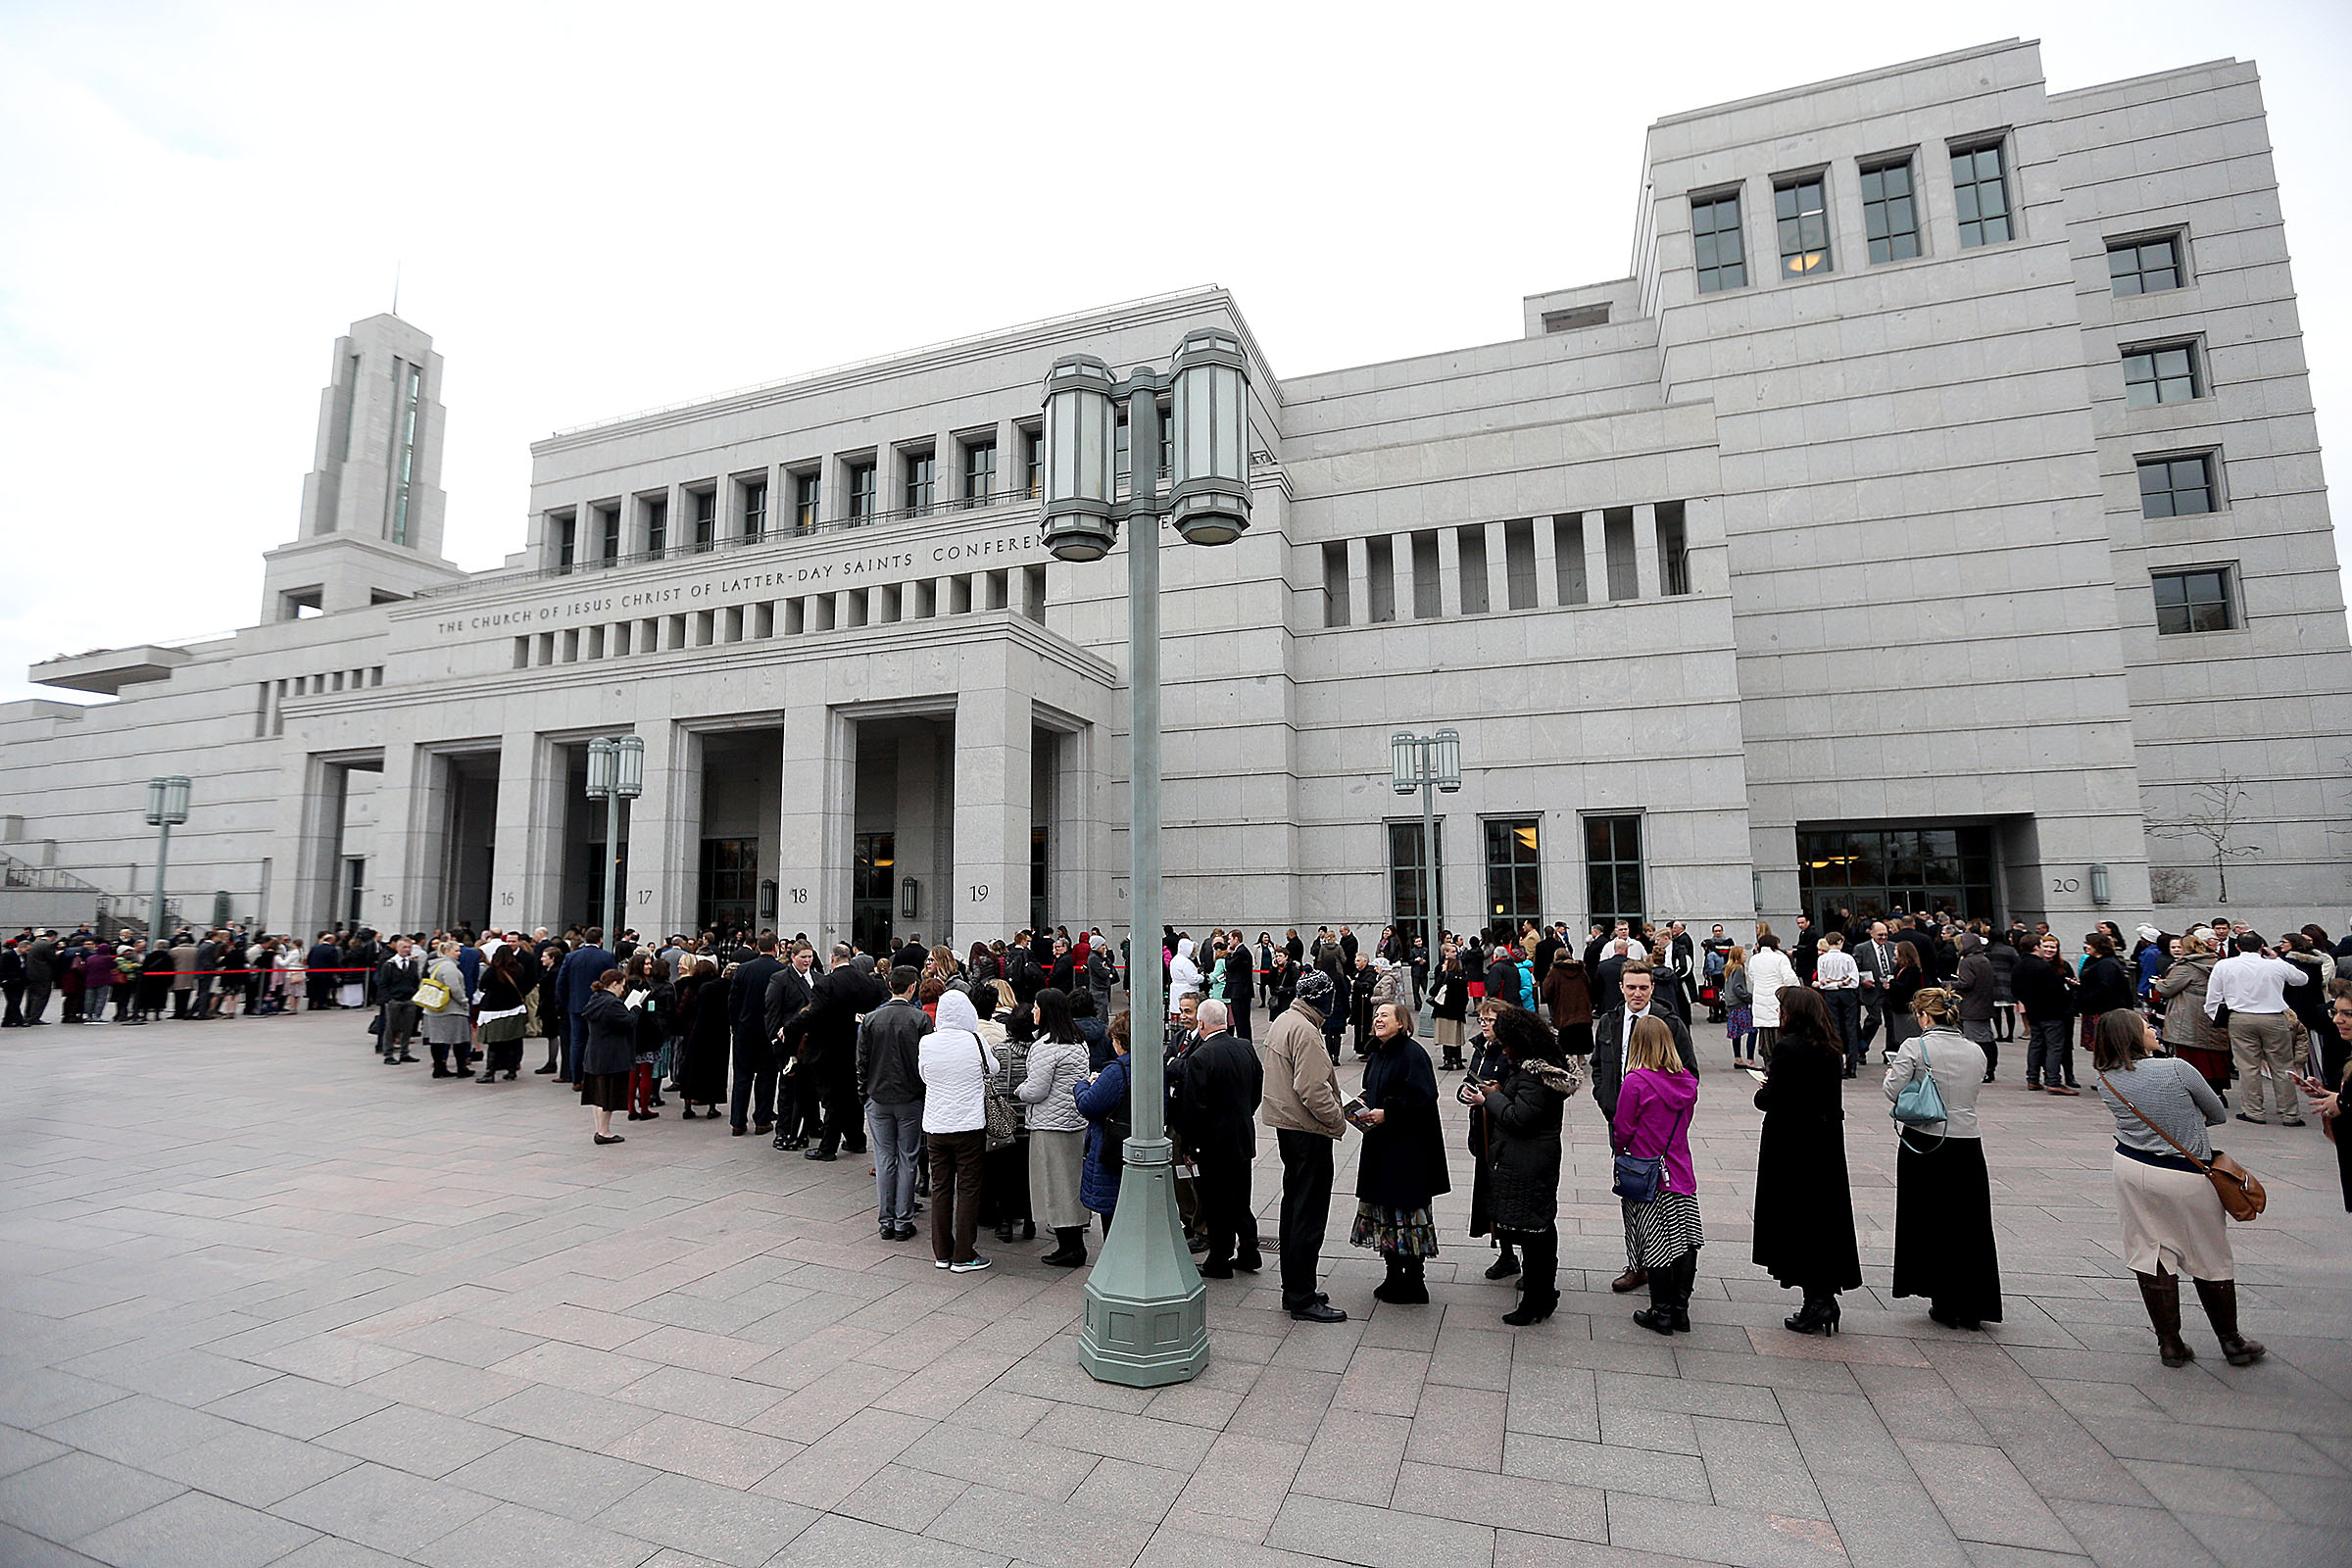 People line up for President Thomas S. Monson's funeral at the Conference Center in Salt Lake City on Friday, Jan. 12, 2018.